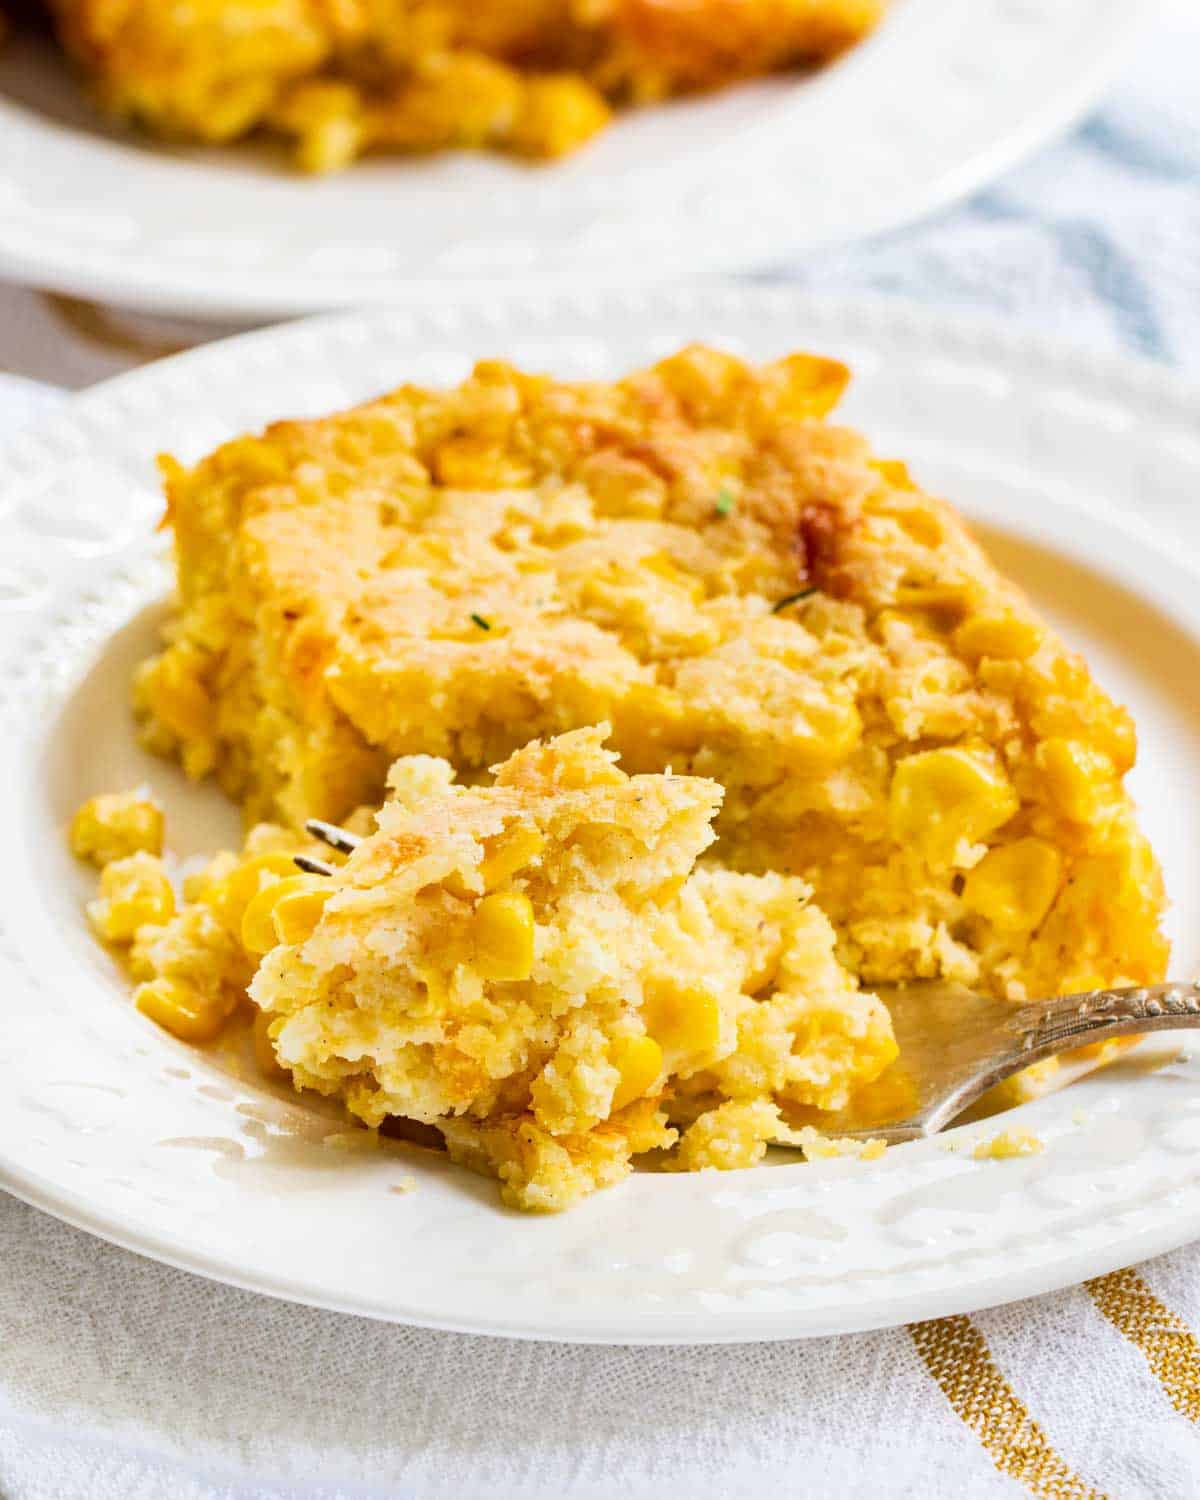 a slice of corn casserole on a plate with a fork.